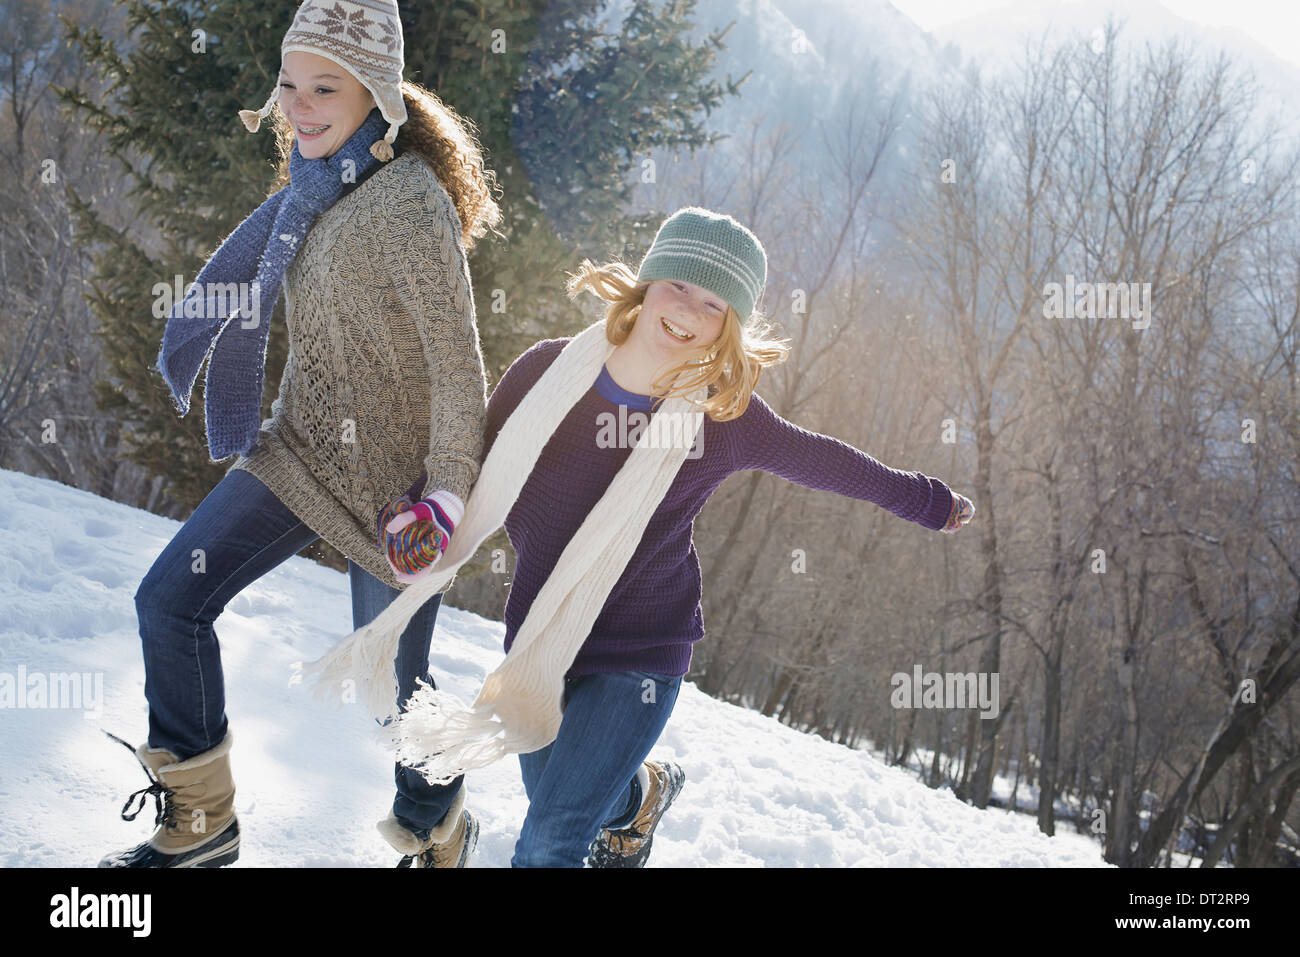 Winter scenery with snow on the ground A woman and a child hand in hand running across the snow Stock Photo